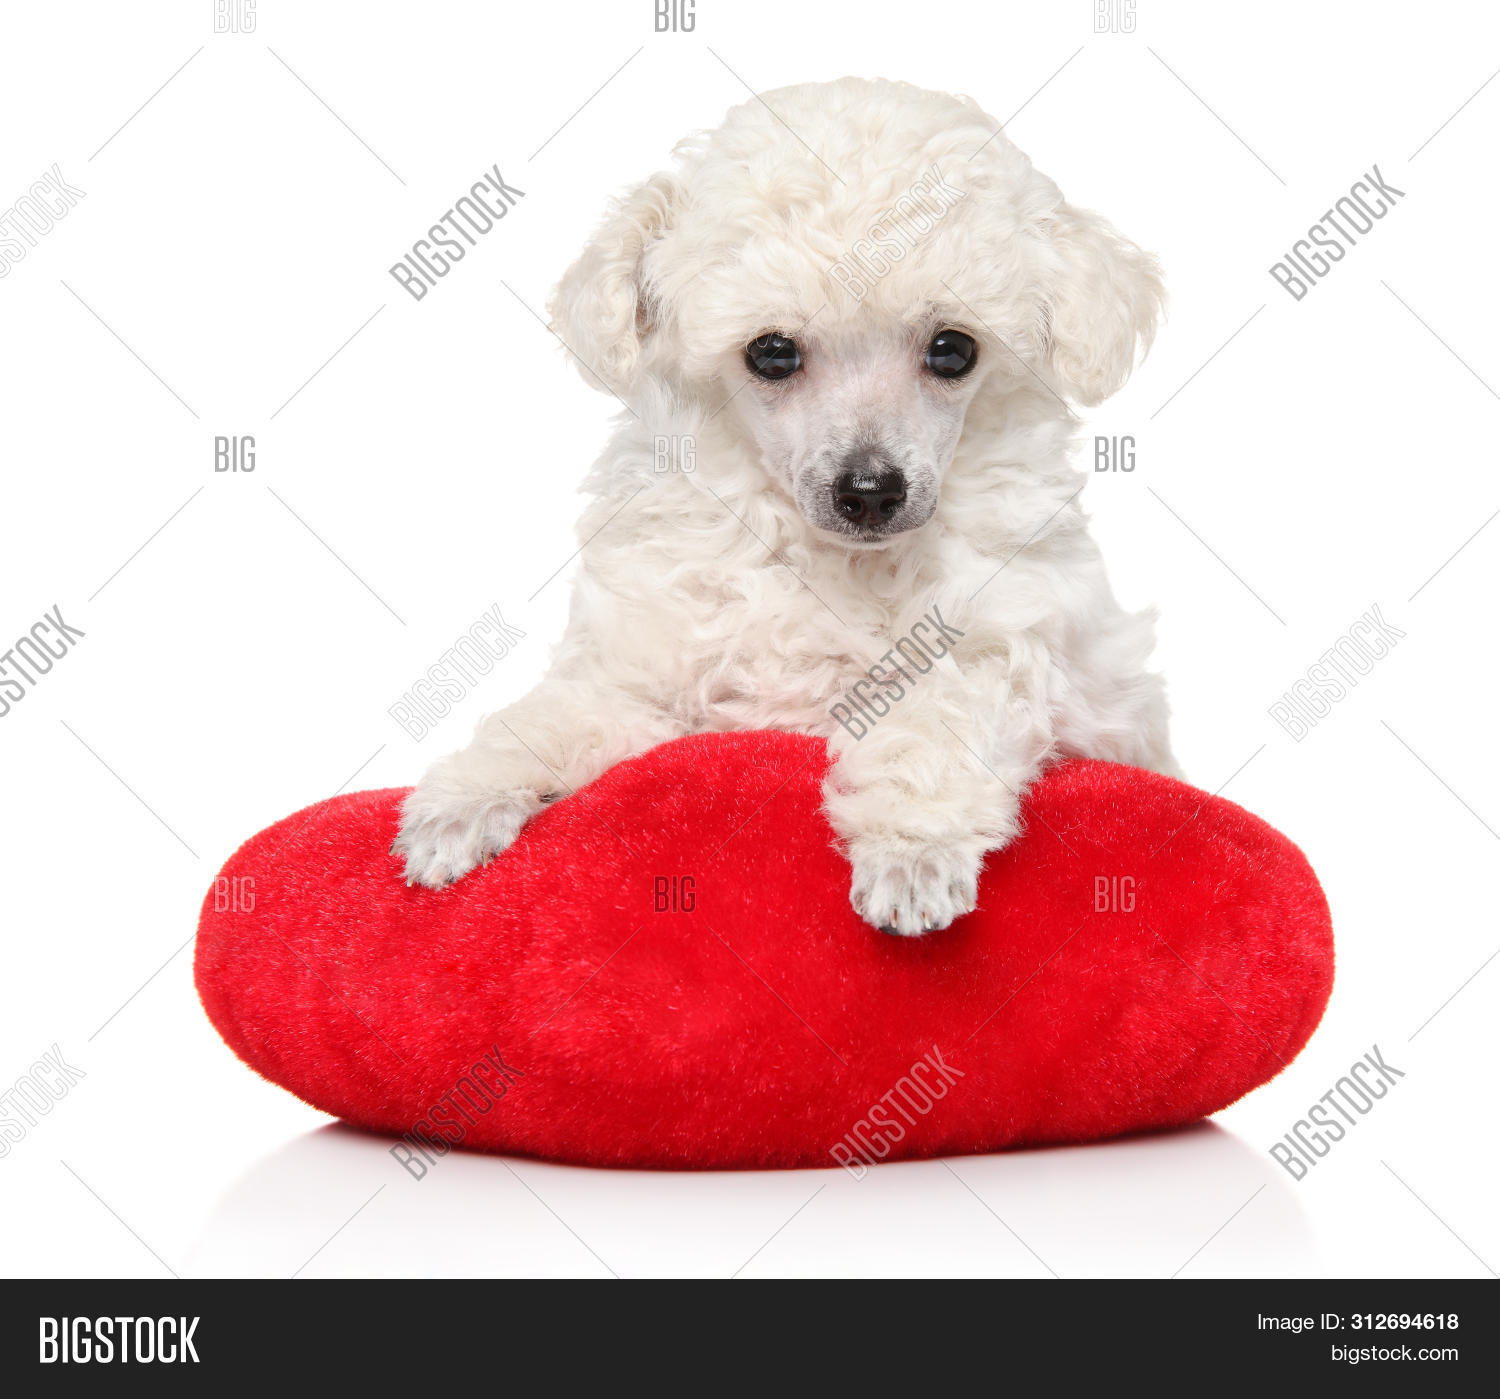 White Toy Poodle Puppy Image Photo Free Trial Bigstock